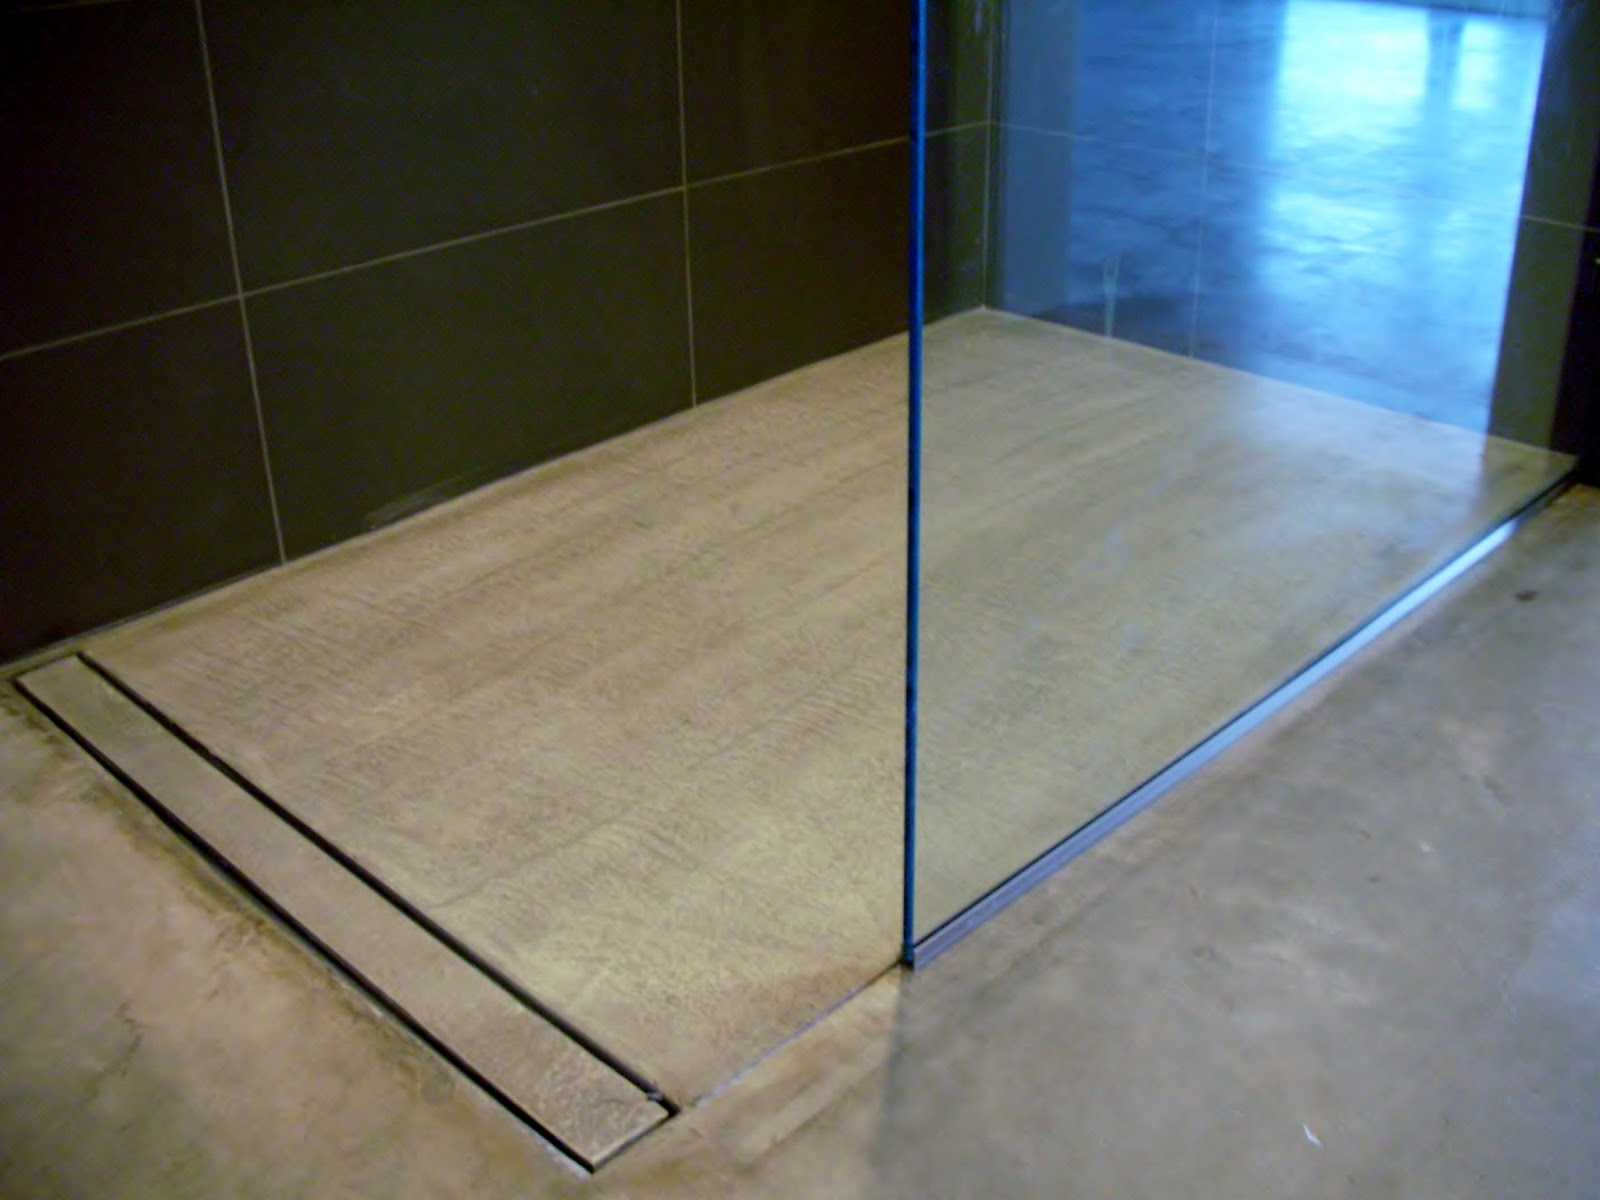 Bathroom Floor Drain : Mode concrete modern open concept bathroom featuring a